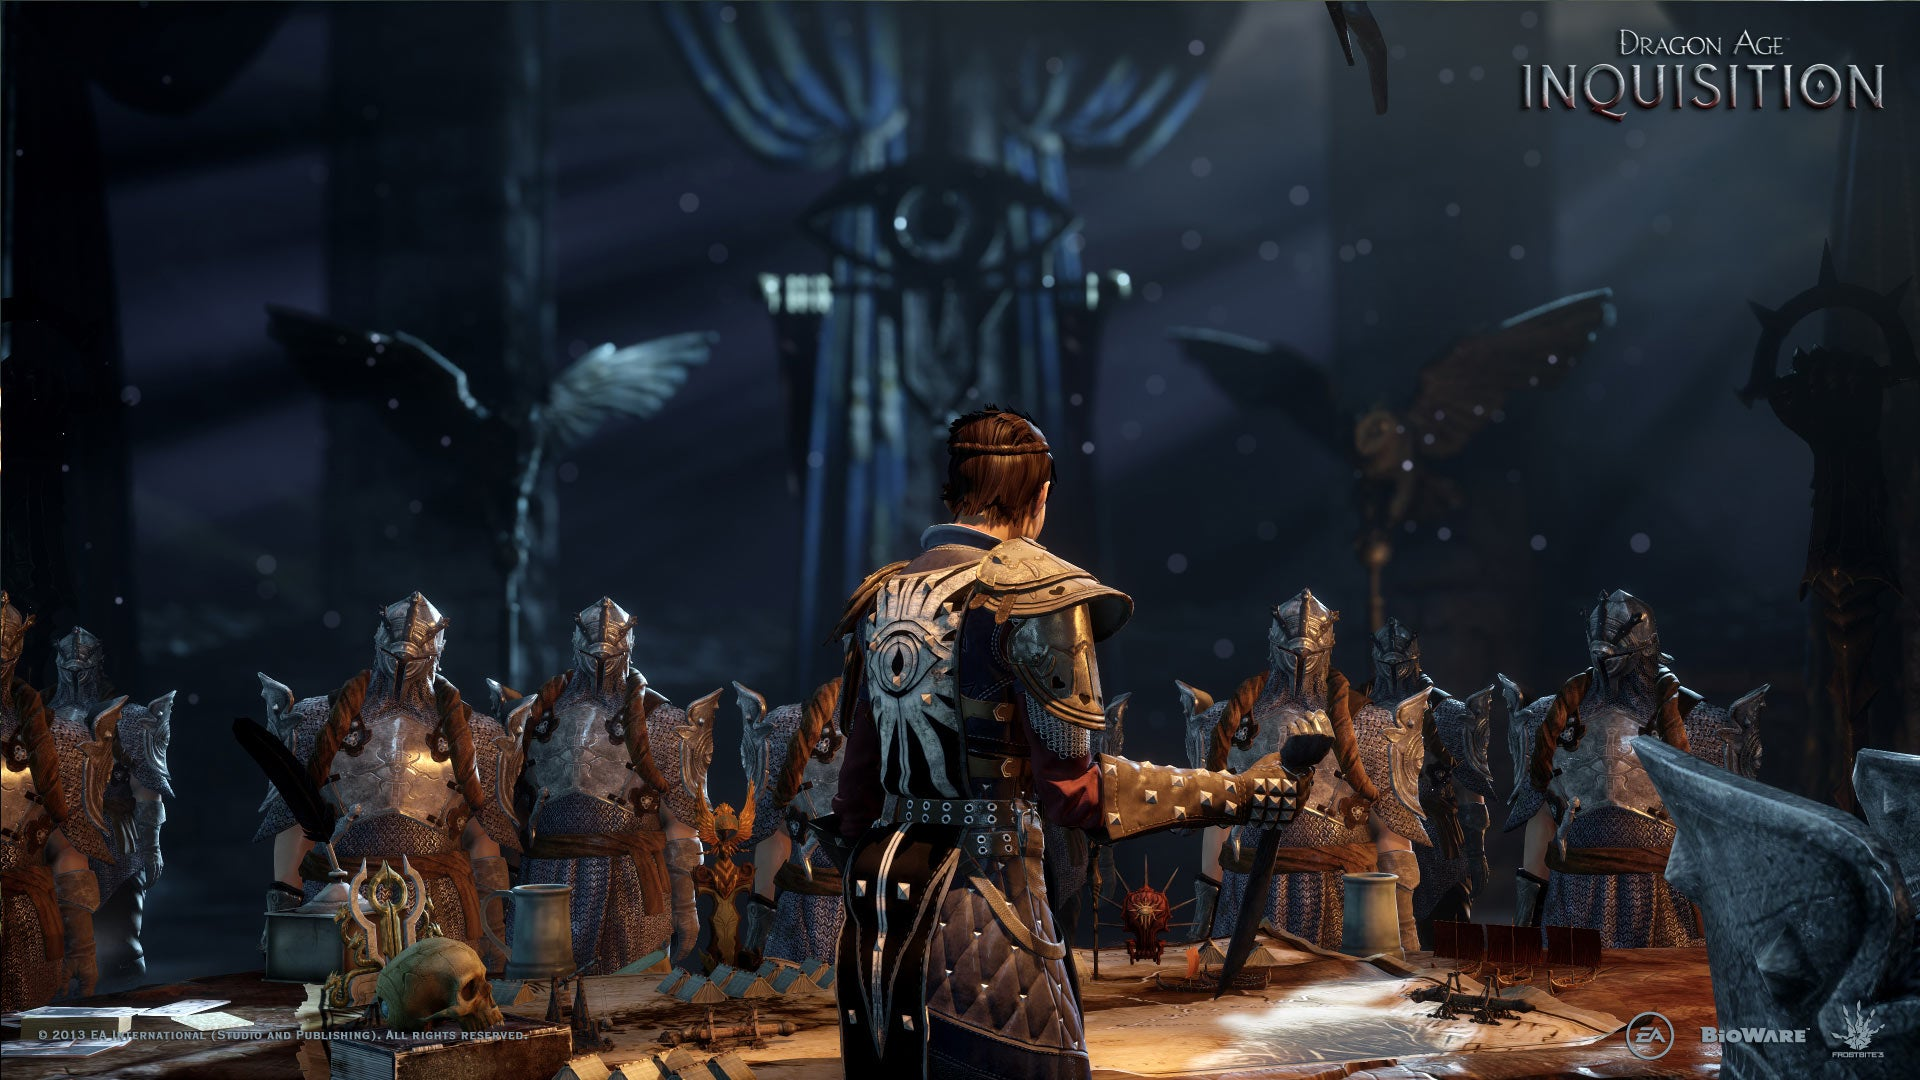 Dragon Age Bioware Video Games Rpg Fantasy Art: Dragon Age's Save File Solution Lets You Rewrite Your History